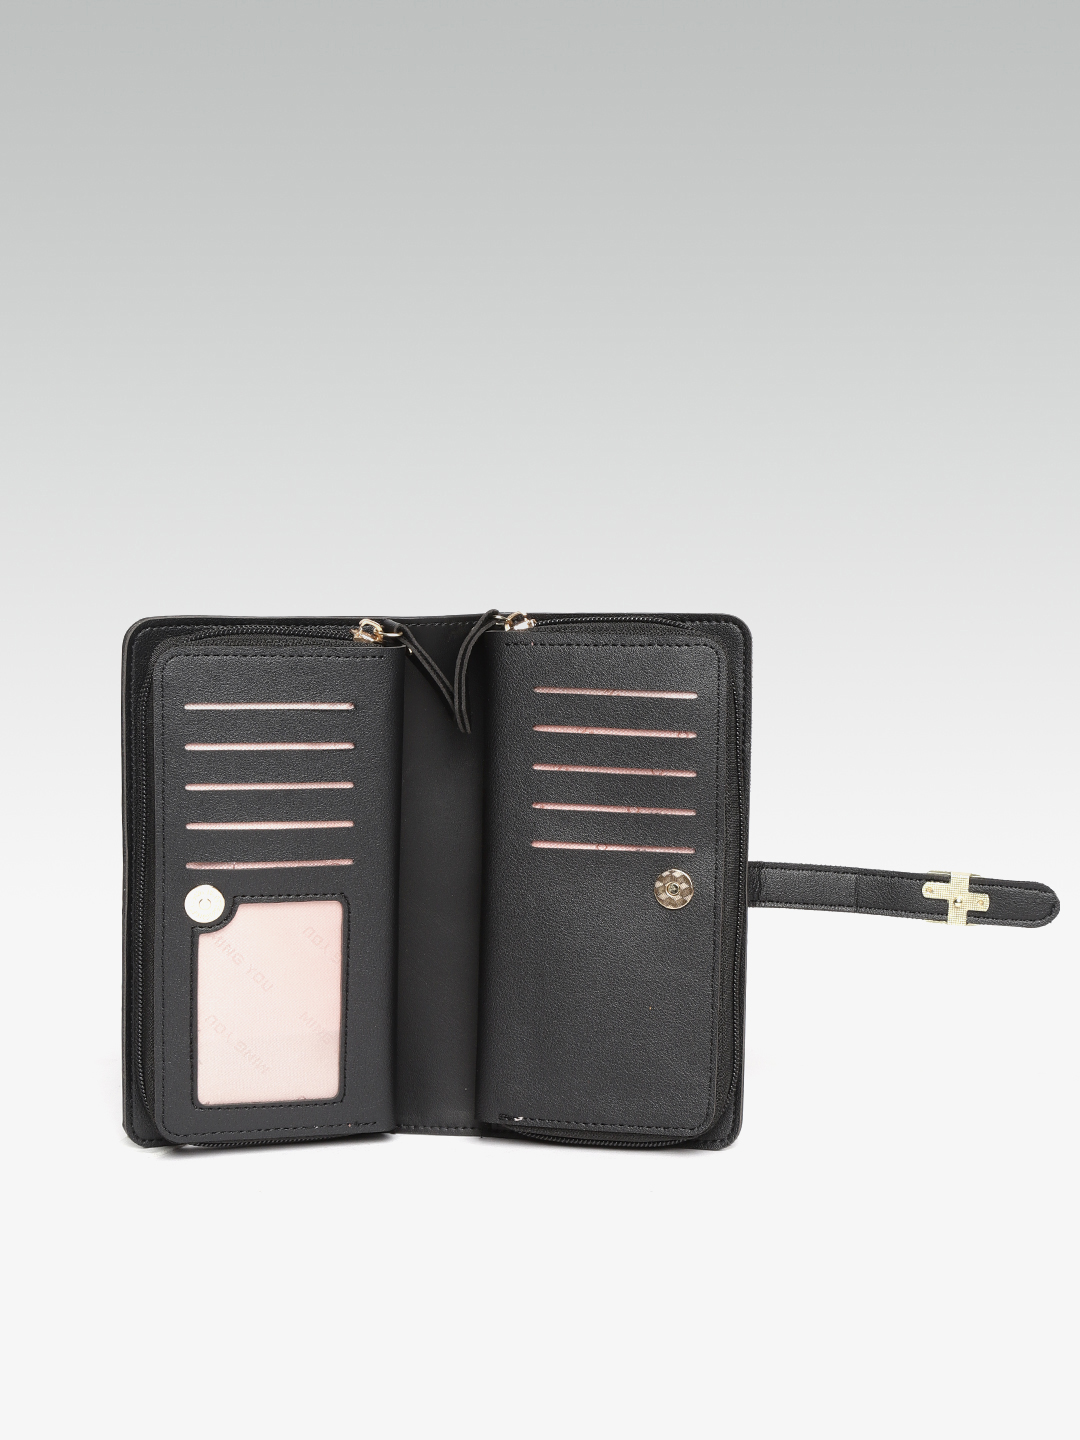 Wallets and Makeup Pouches-Big On Style Wallet4